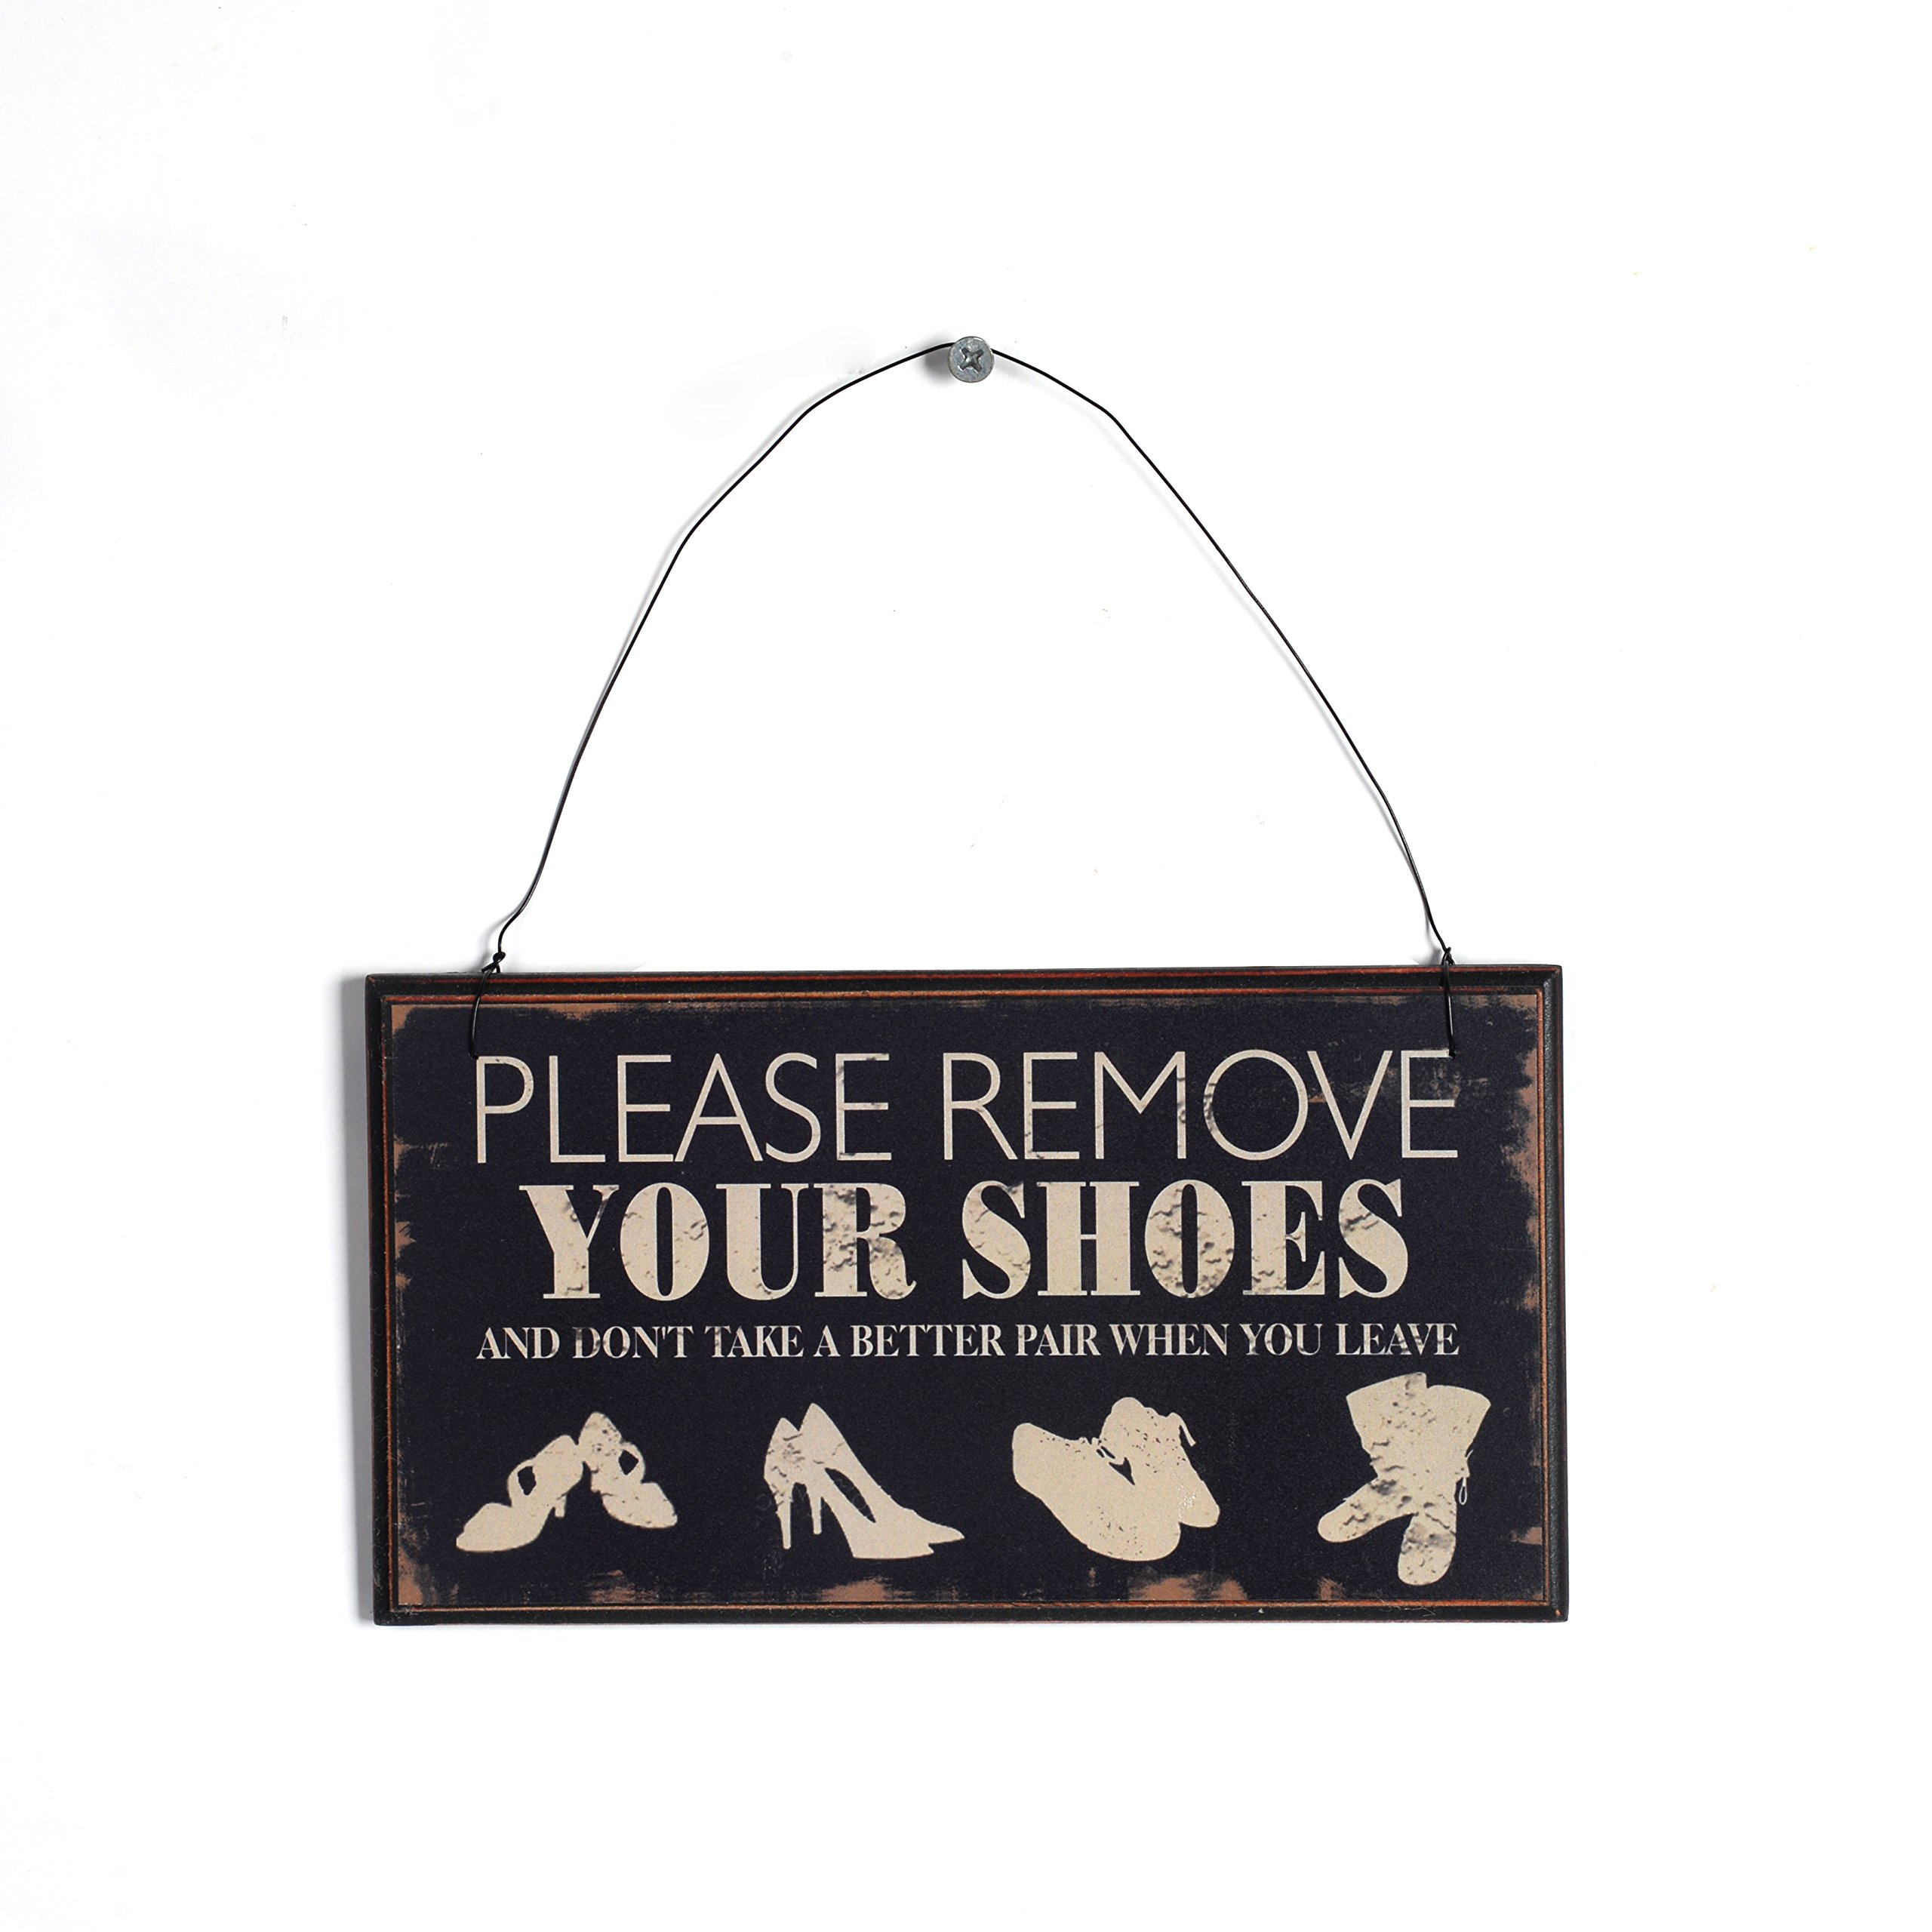 NIKKY HOME Please Remove Your Shoes Wooden Wall Decorative Sign 8.37 x 0.37 x 4.5 Inches Black by NIKKY HOME